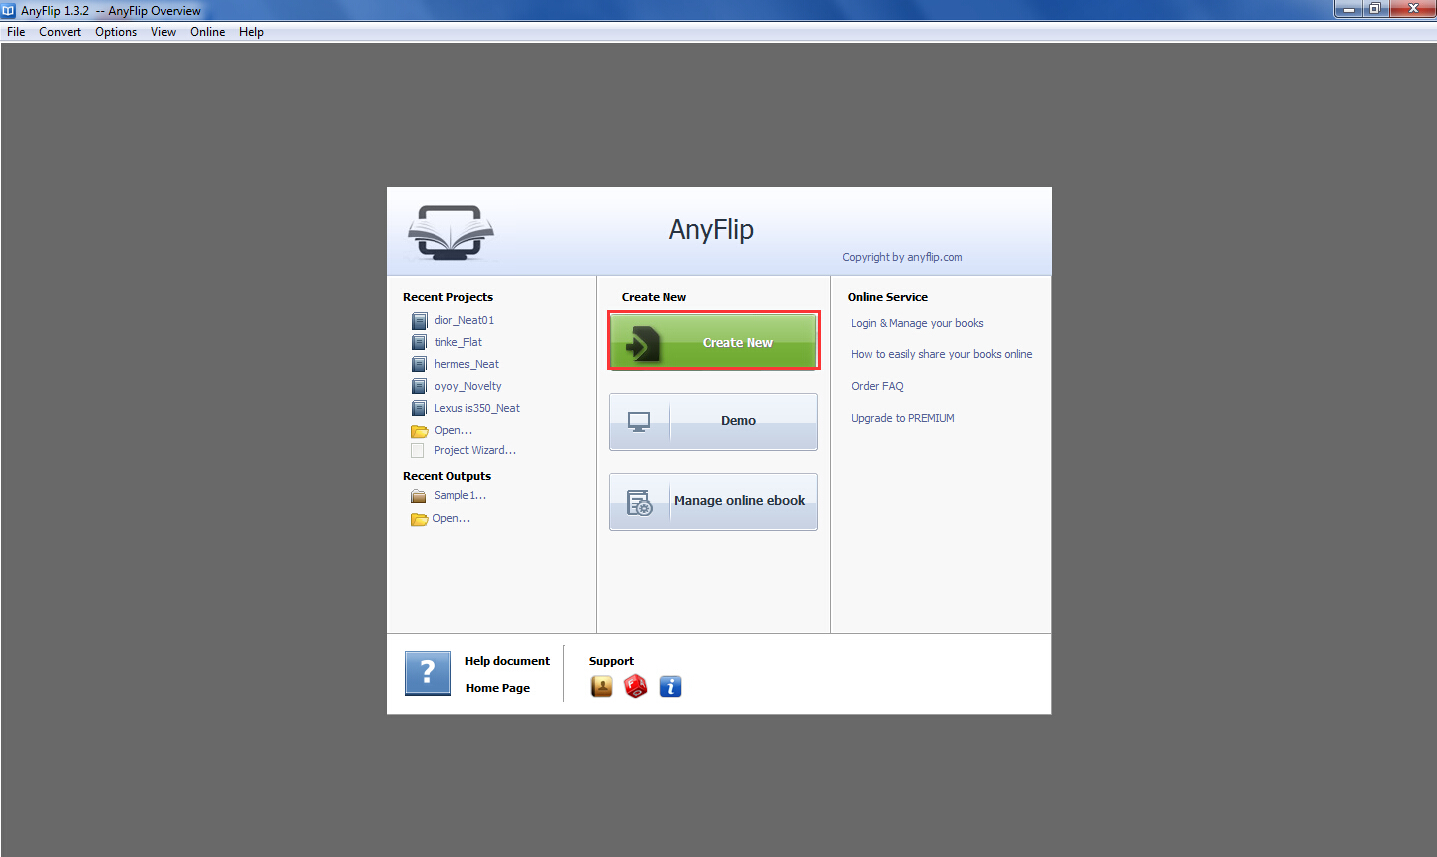 AnyFlip--the New Powerful Digital Flipbook Creator for the Publishers - Image 2